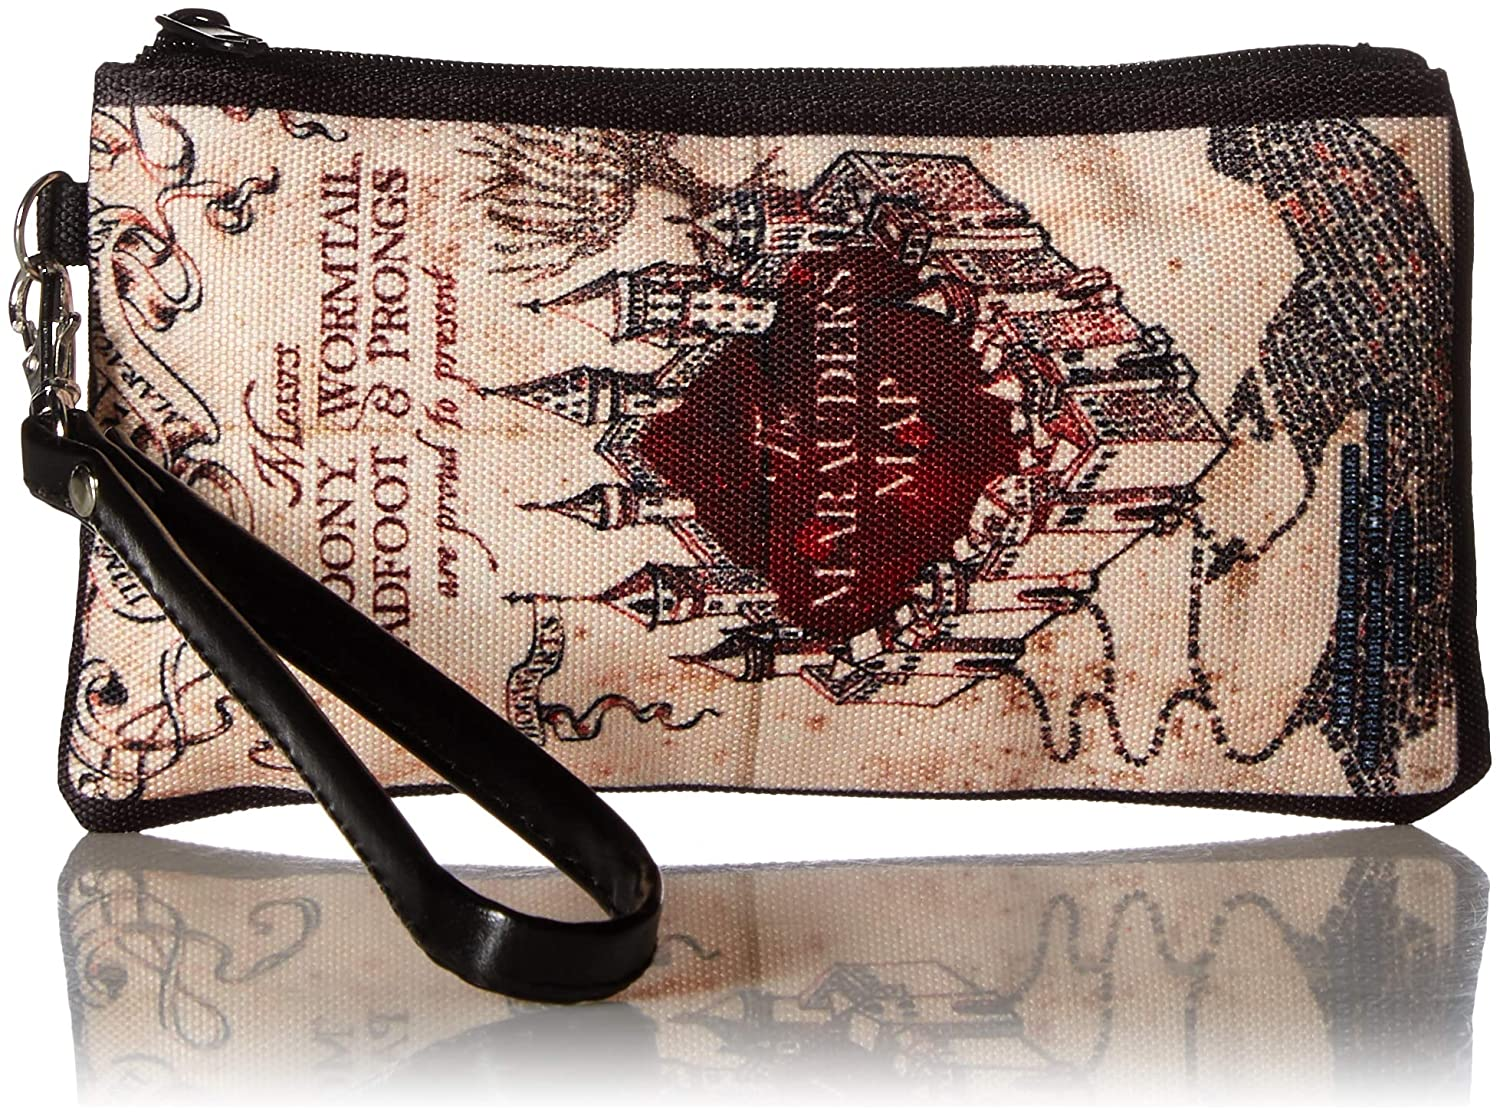 "Buckle-Down Buckle-Down Zip Wallet Harry Potter Large Accessory, Harry Potter, 8"" x 5"""